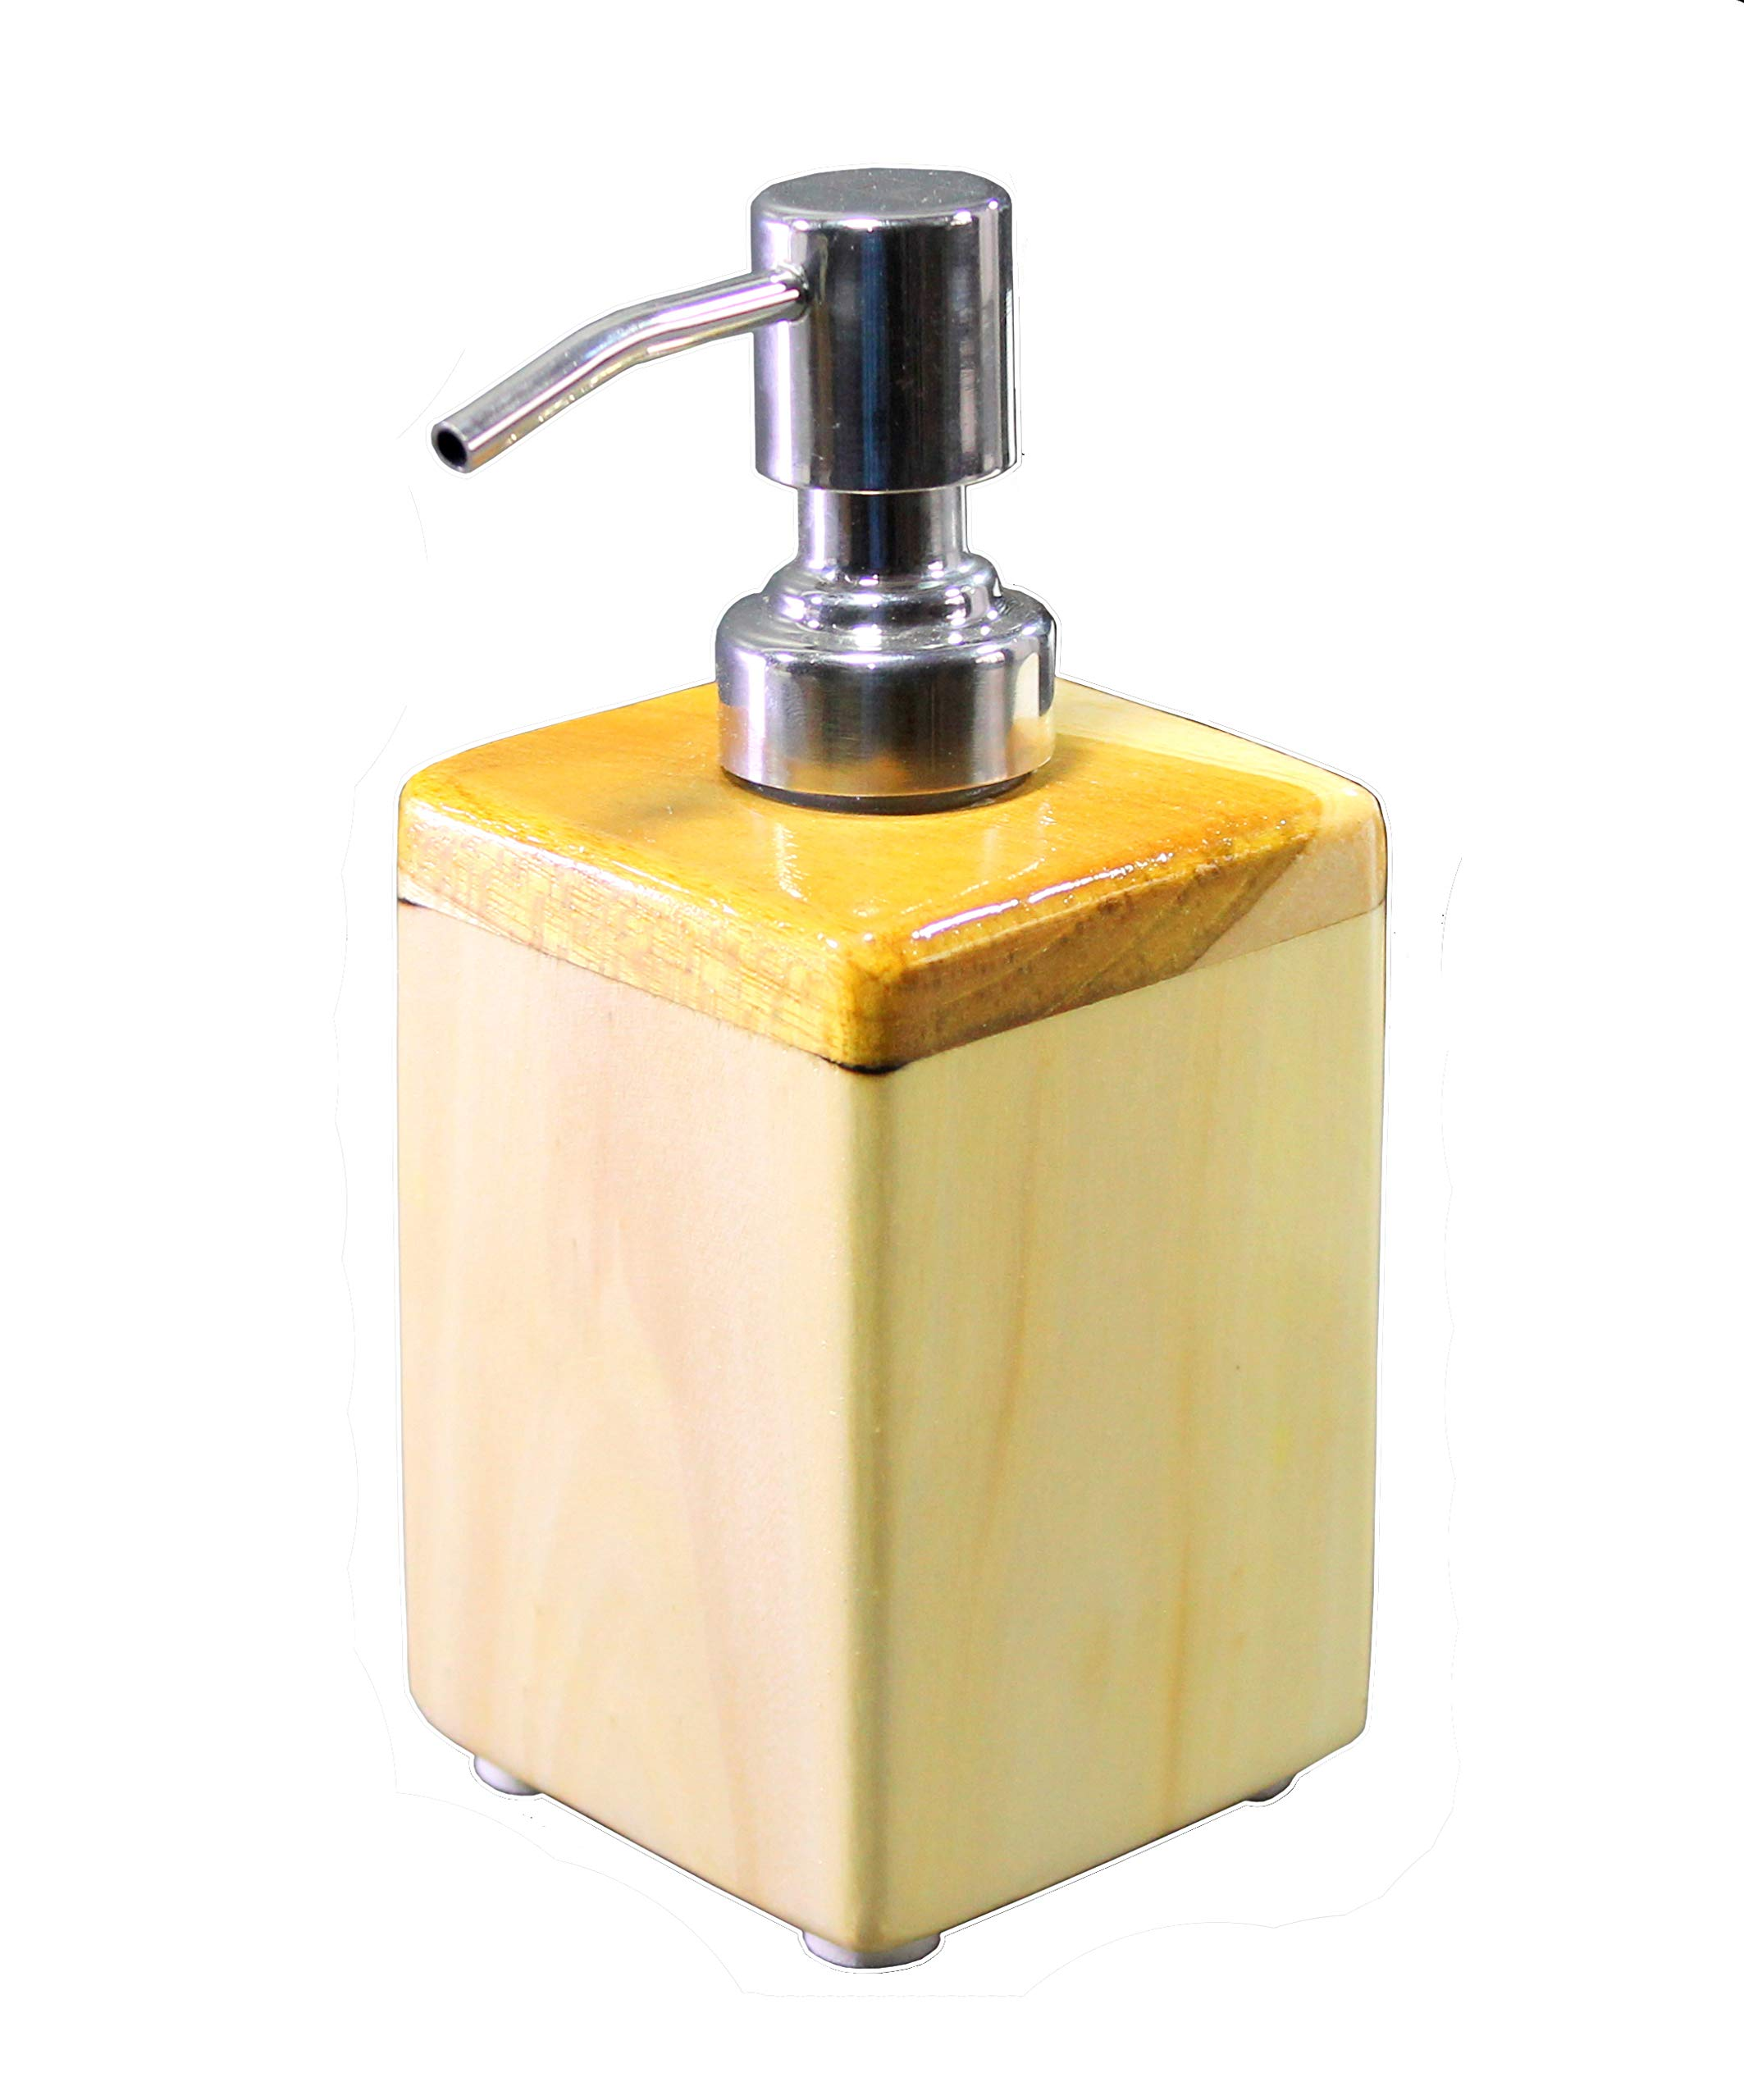 KLEO Wood Wooden Soap Dispenser - Made of Genuine Indian Wood - Luxury Bathroom Accessories Bath Set (Square Plain)